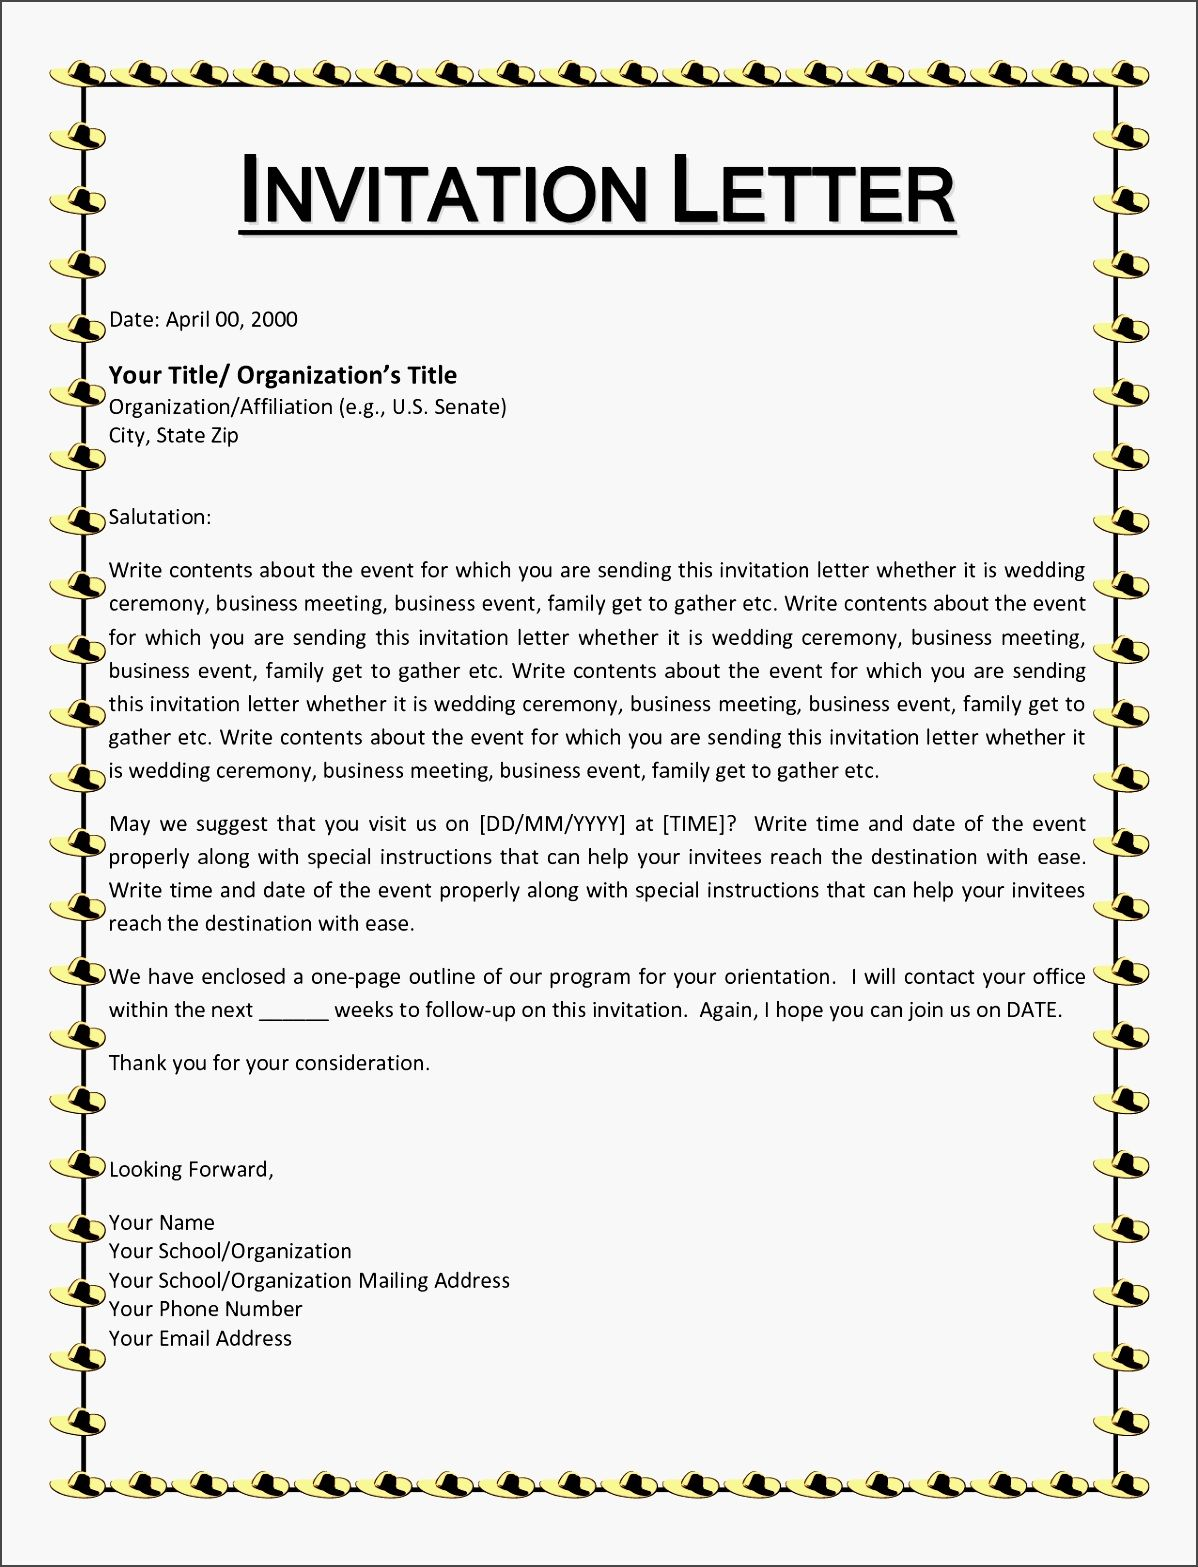 invitation letter template invitation letter informal saevk beautiful wedding 22588 | 146098b378326e550dbe18ca5b15d64b